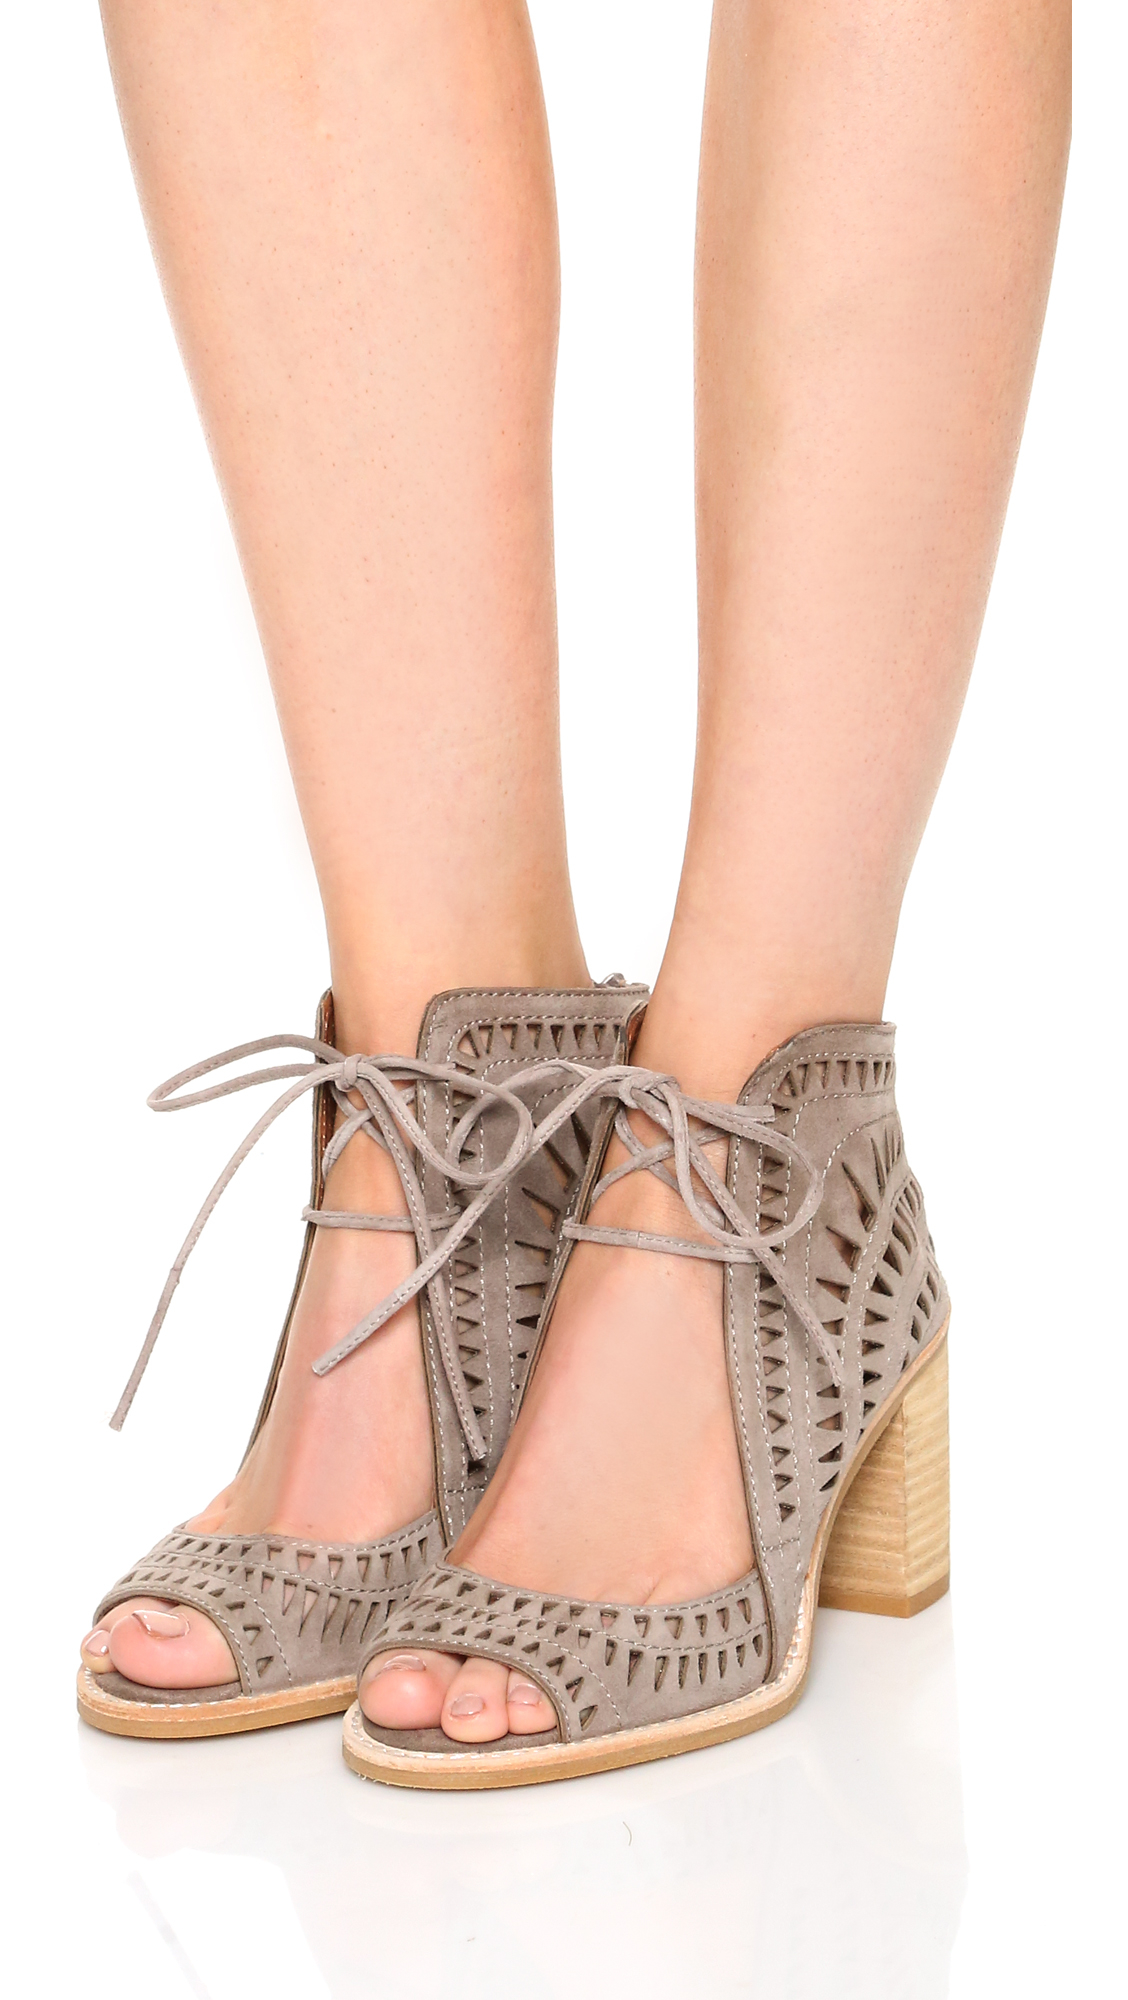 Top Quality Online FOOTWEAR - Sandals Jeffrey Campbell Cheap Low Shipping Fee 3JY8P